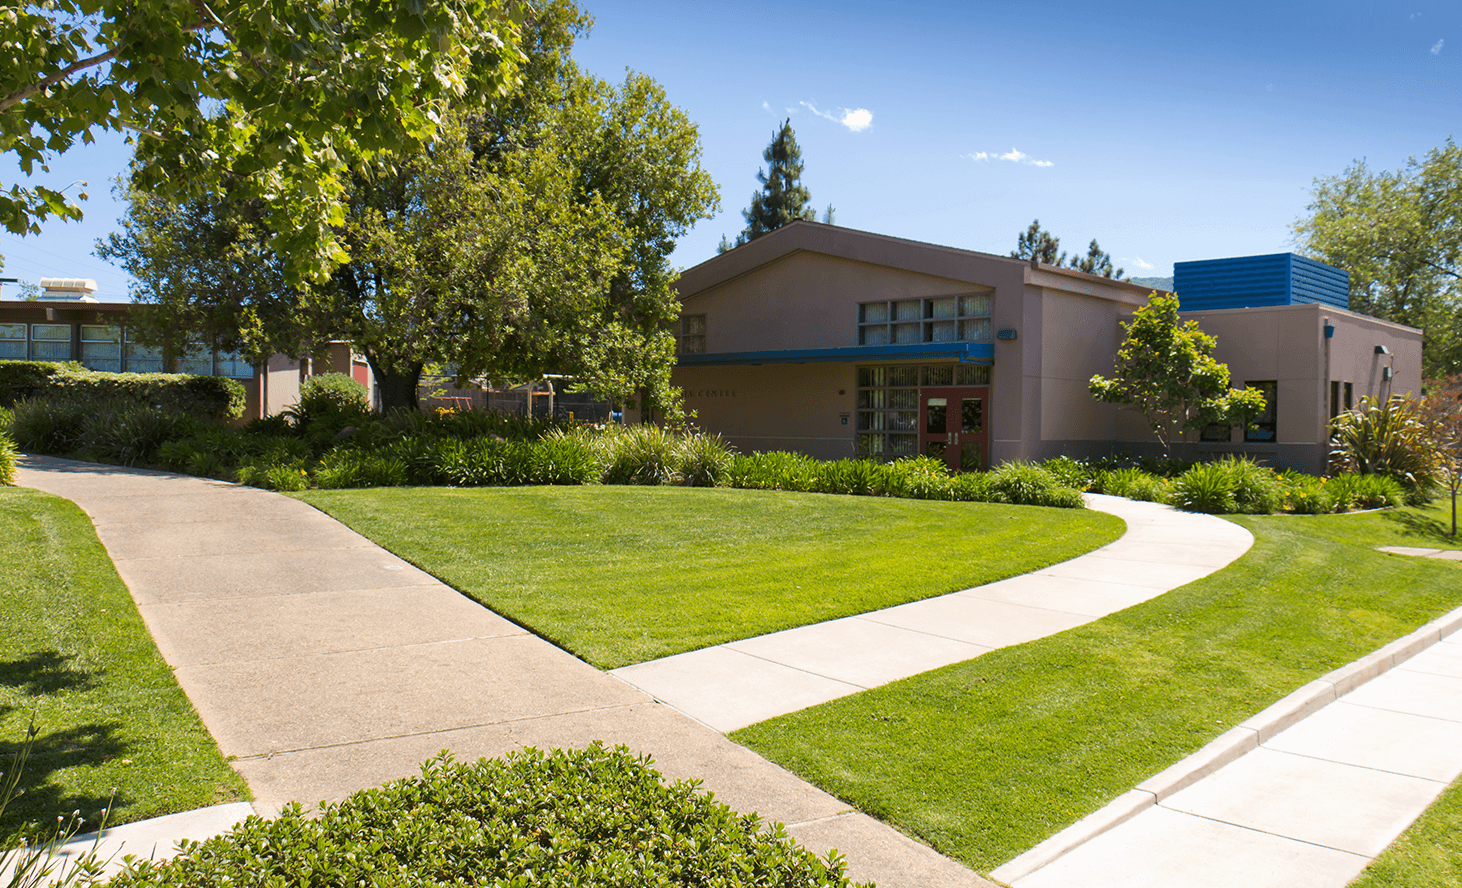 Campus Building | Challenger School - Harwood | Private School In San Jose, California